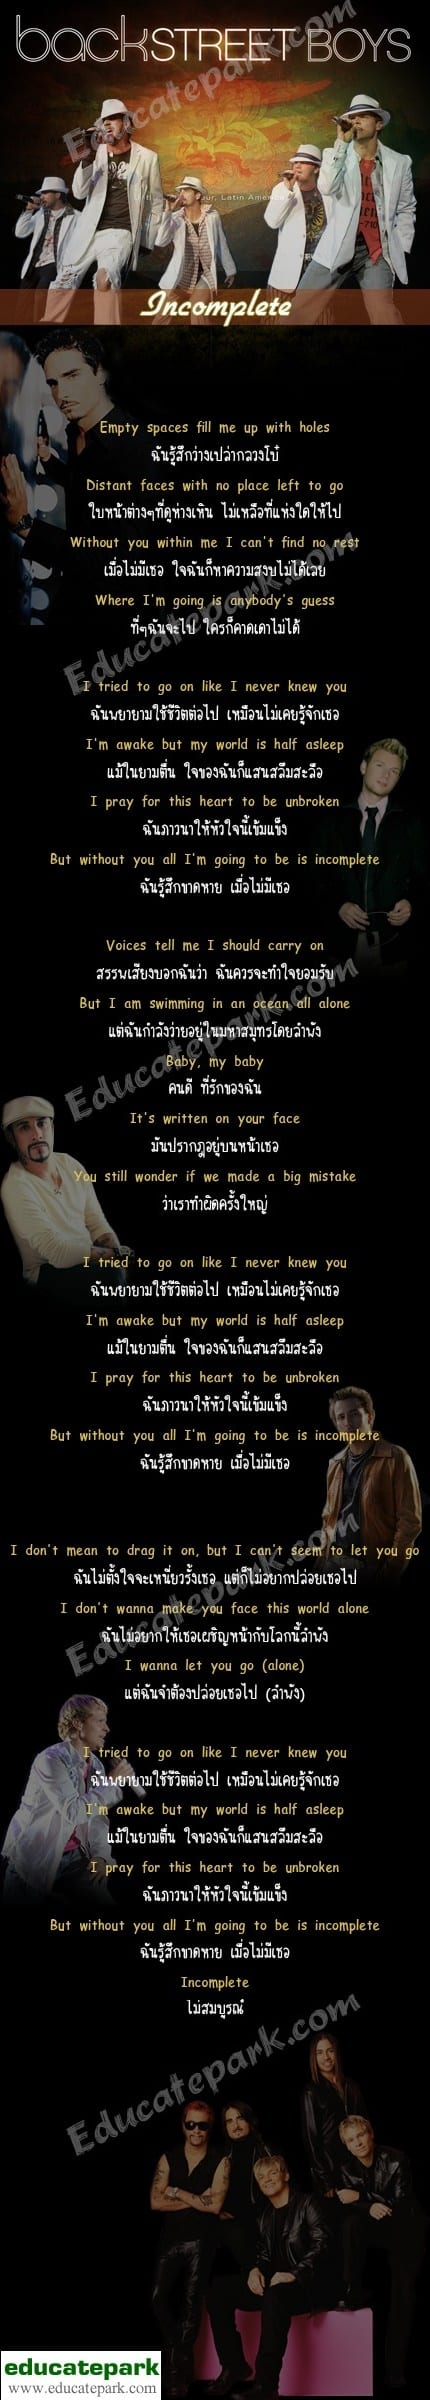 แปลเพลง Incomplete - Backstreet Boys